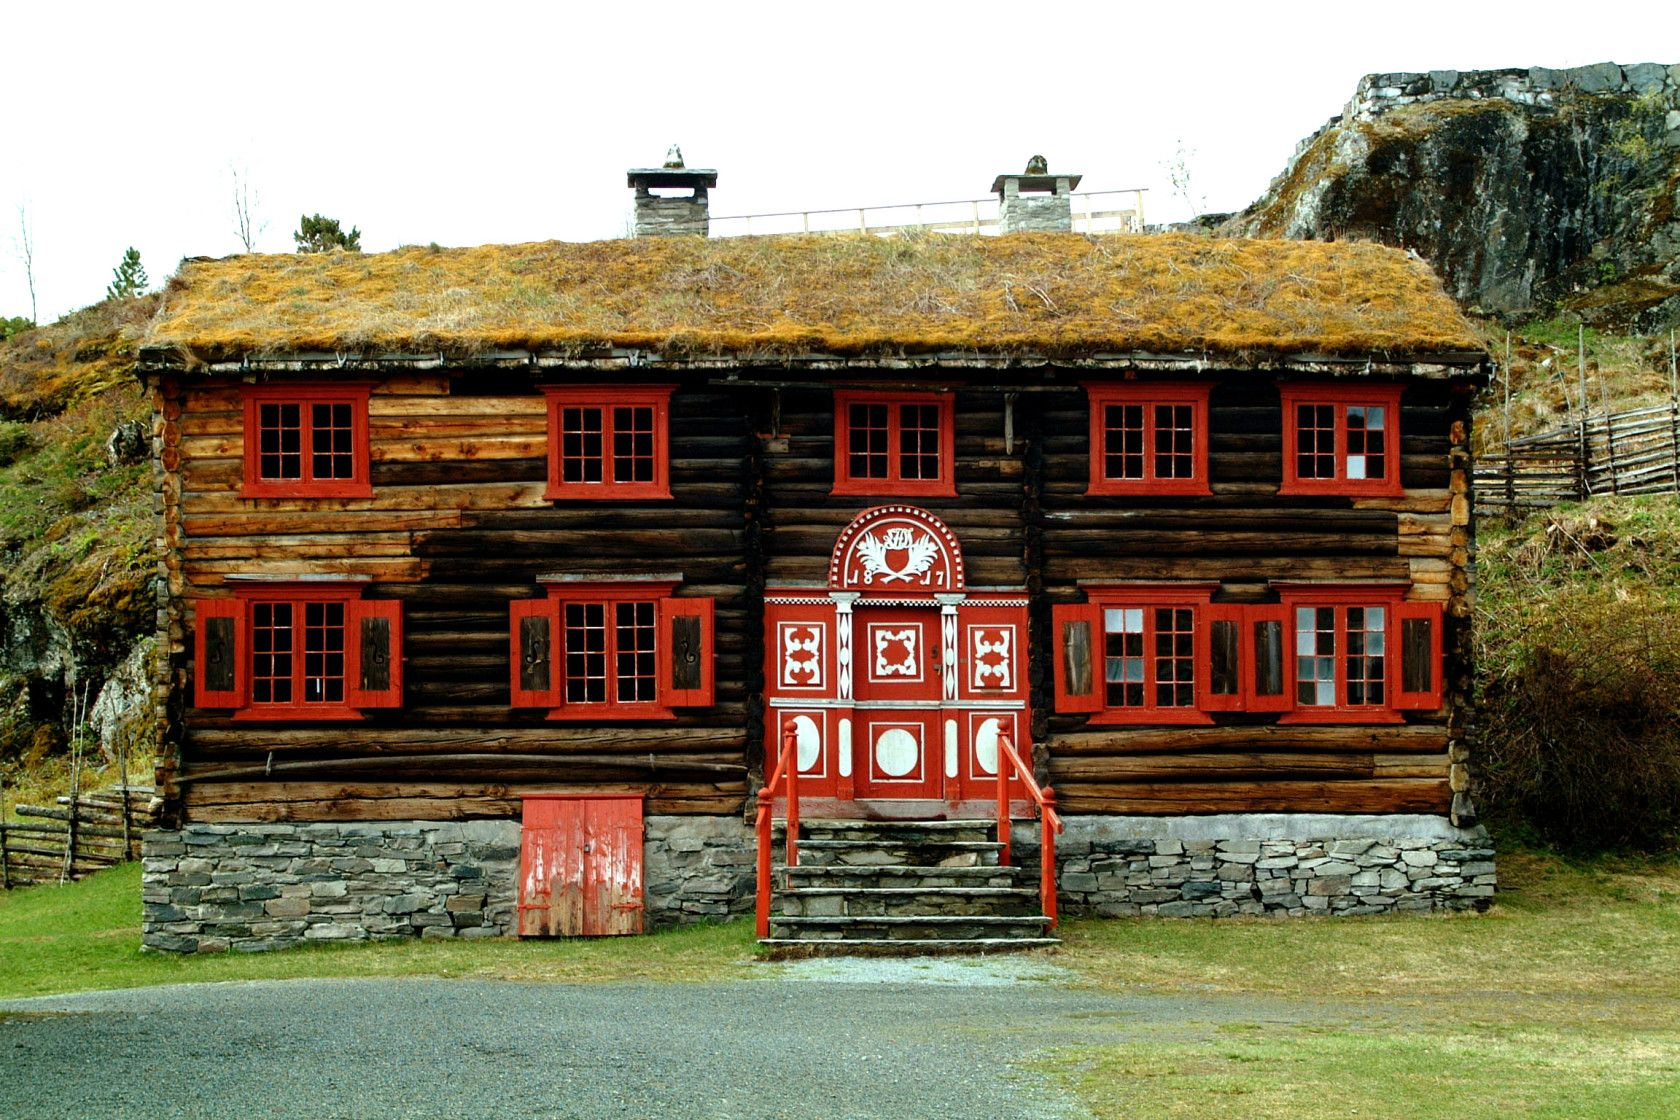 Sverresborg Trøndelag Folk Museum, 70+ acres of open air & indoor exhibits, including 80+ historical buildings, artifacts & photos.  The organization also manages other local museums, including a Maritime Museum.  Pictures of artifacts can be found at  digitaltmuseum.no.